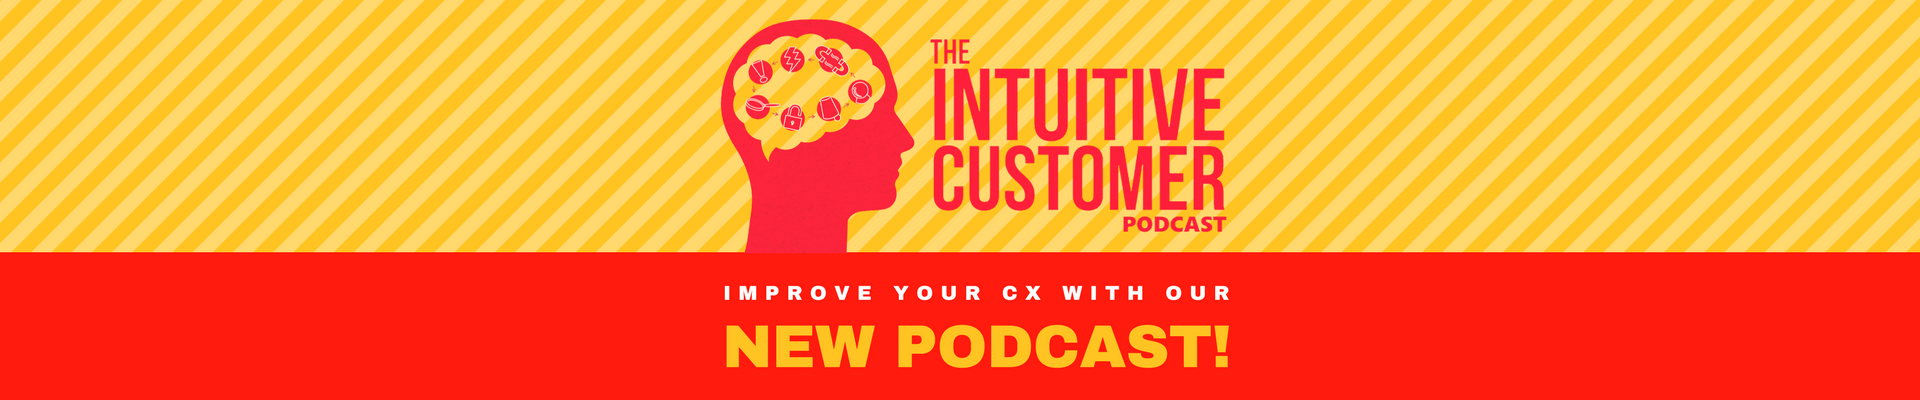 The Intuitive Customer Podcast Promo by Colin Shaw and Professor Ryan Hamilton